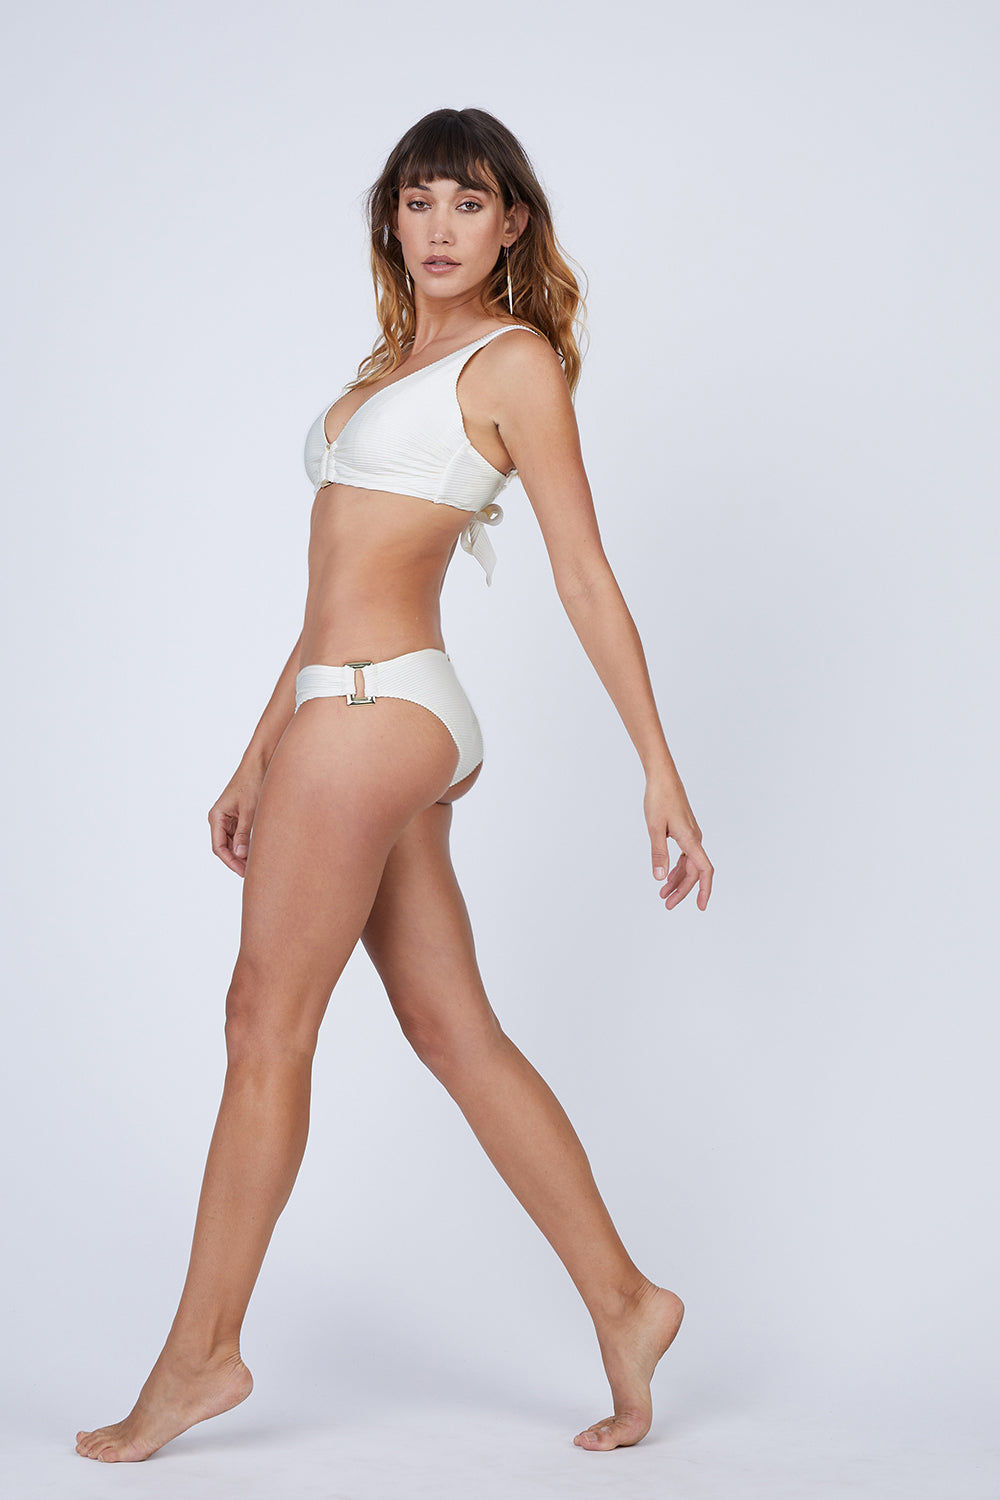 HEIDI KLEIN D-G Rectangle Ribbed  Bikini Top - Cream White Bikini Top | Cream White|  Heidi Klein D-G Rectangle Ribbed  Bikini Top - Cream White. Features:  Hardware at centre front and bone at side seam help with support and provide a luxurious finish. Underwired. The side seams and underarm coverage  provide support The bust is lined with sculpting fabric and the cradle is additionally lined in powermesh, thus making the top very supportive The bottom band ties are an adjustable tie back. The shoulder straps are adjustable in length and elasticated for comfort. Side View